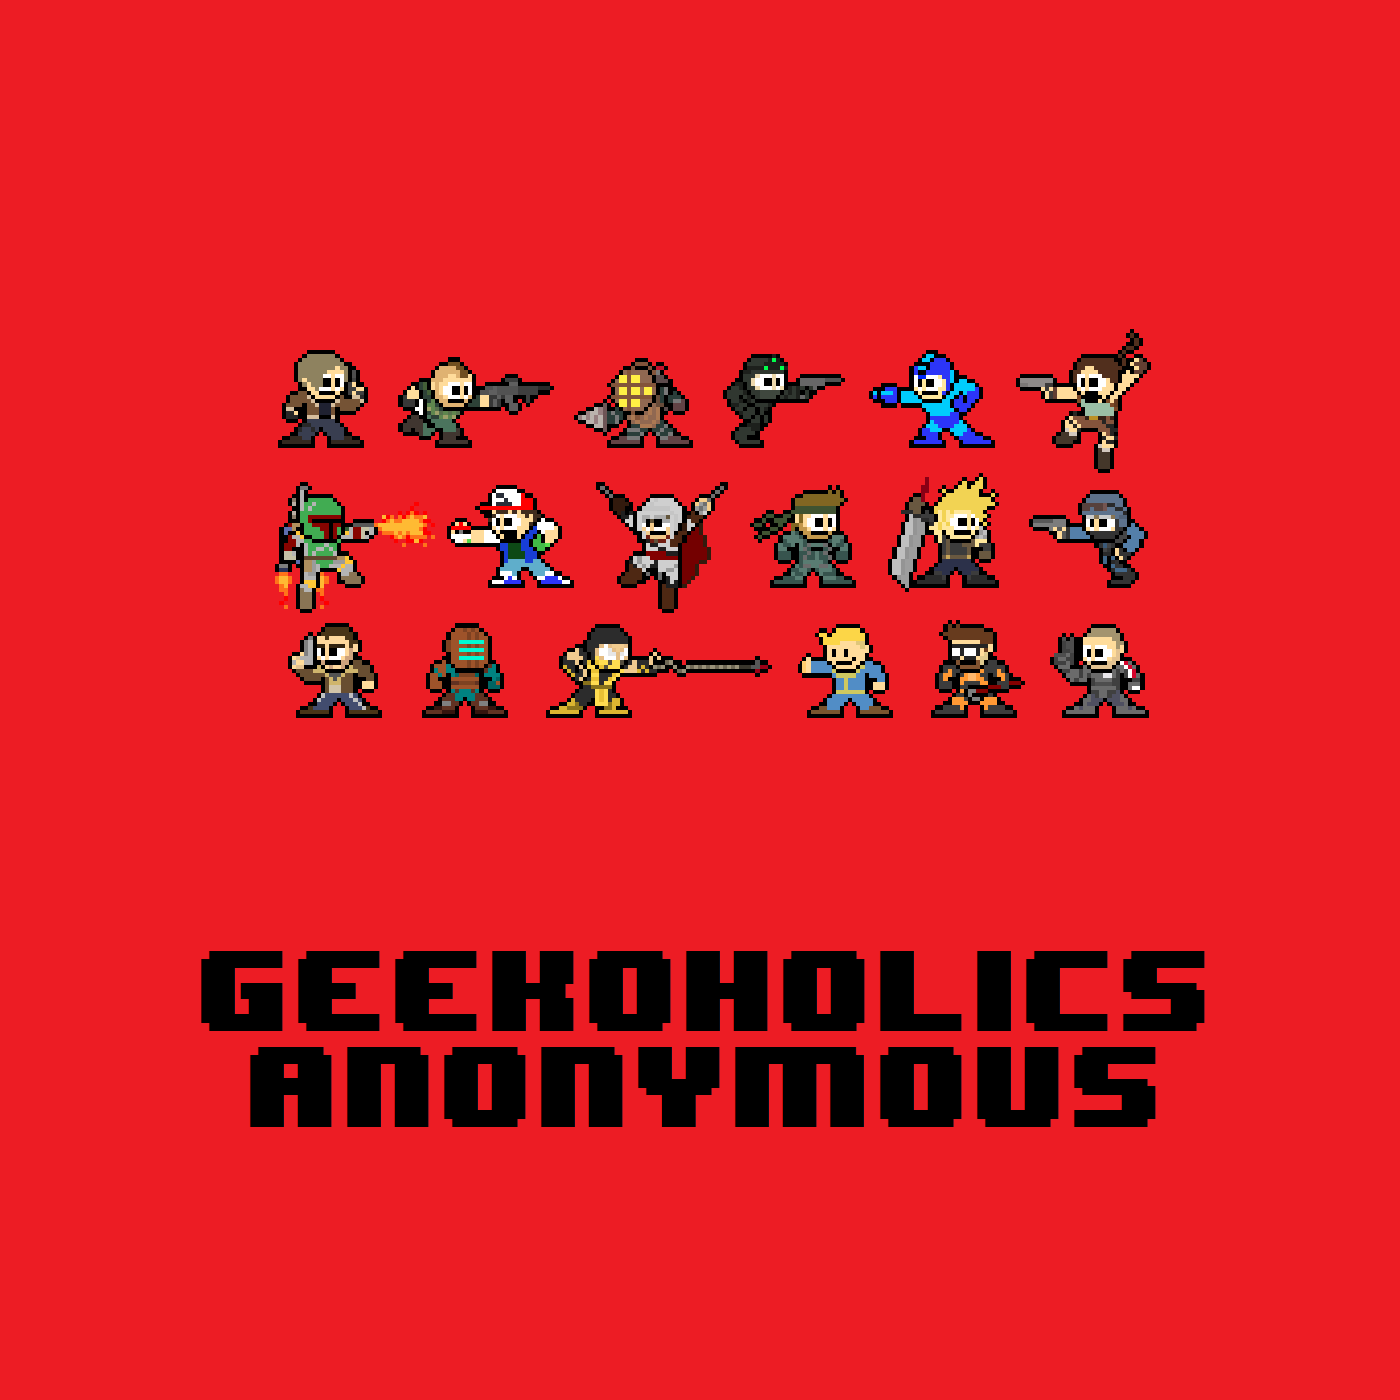 Pokémon Unite, Marvel's What If...?, Ted Lasso and more - Geekoholics Anonymous Podcast 318 show art